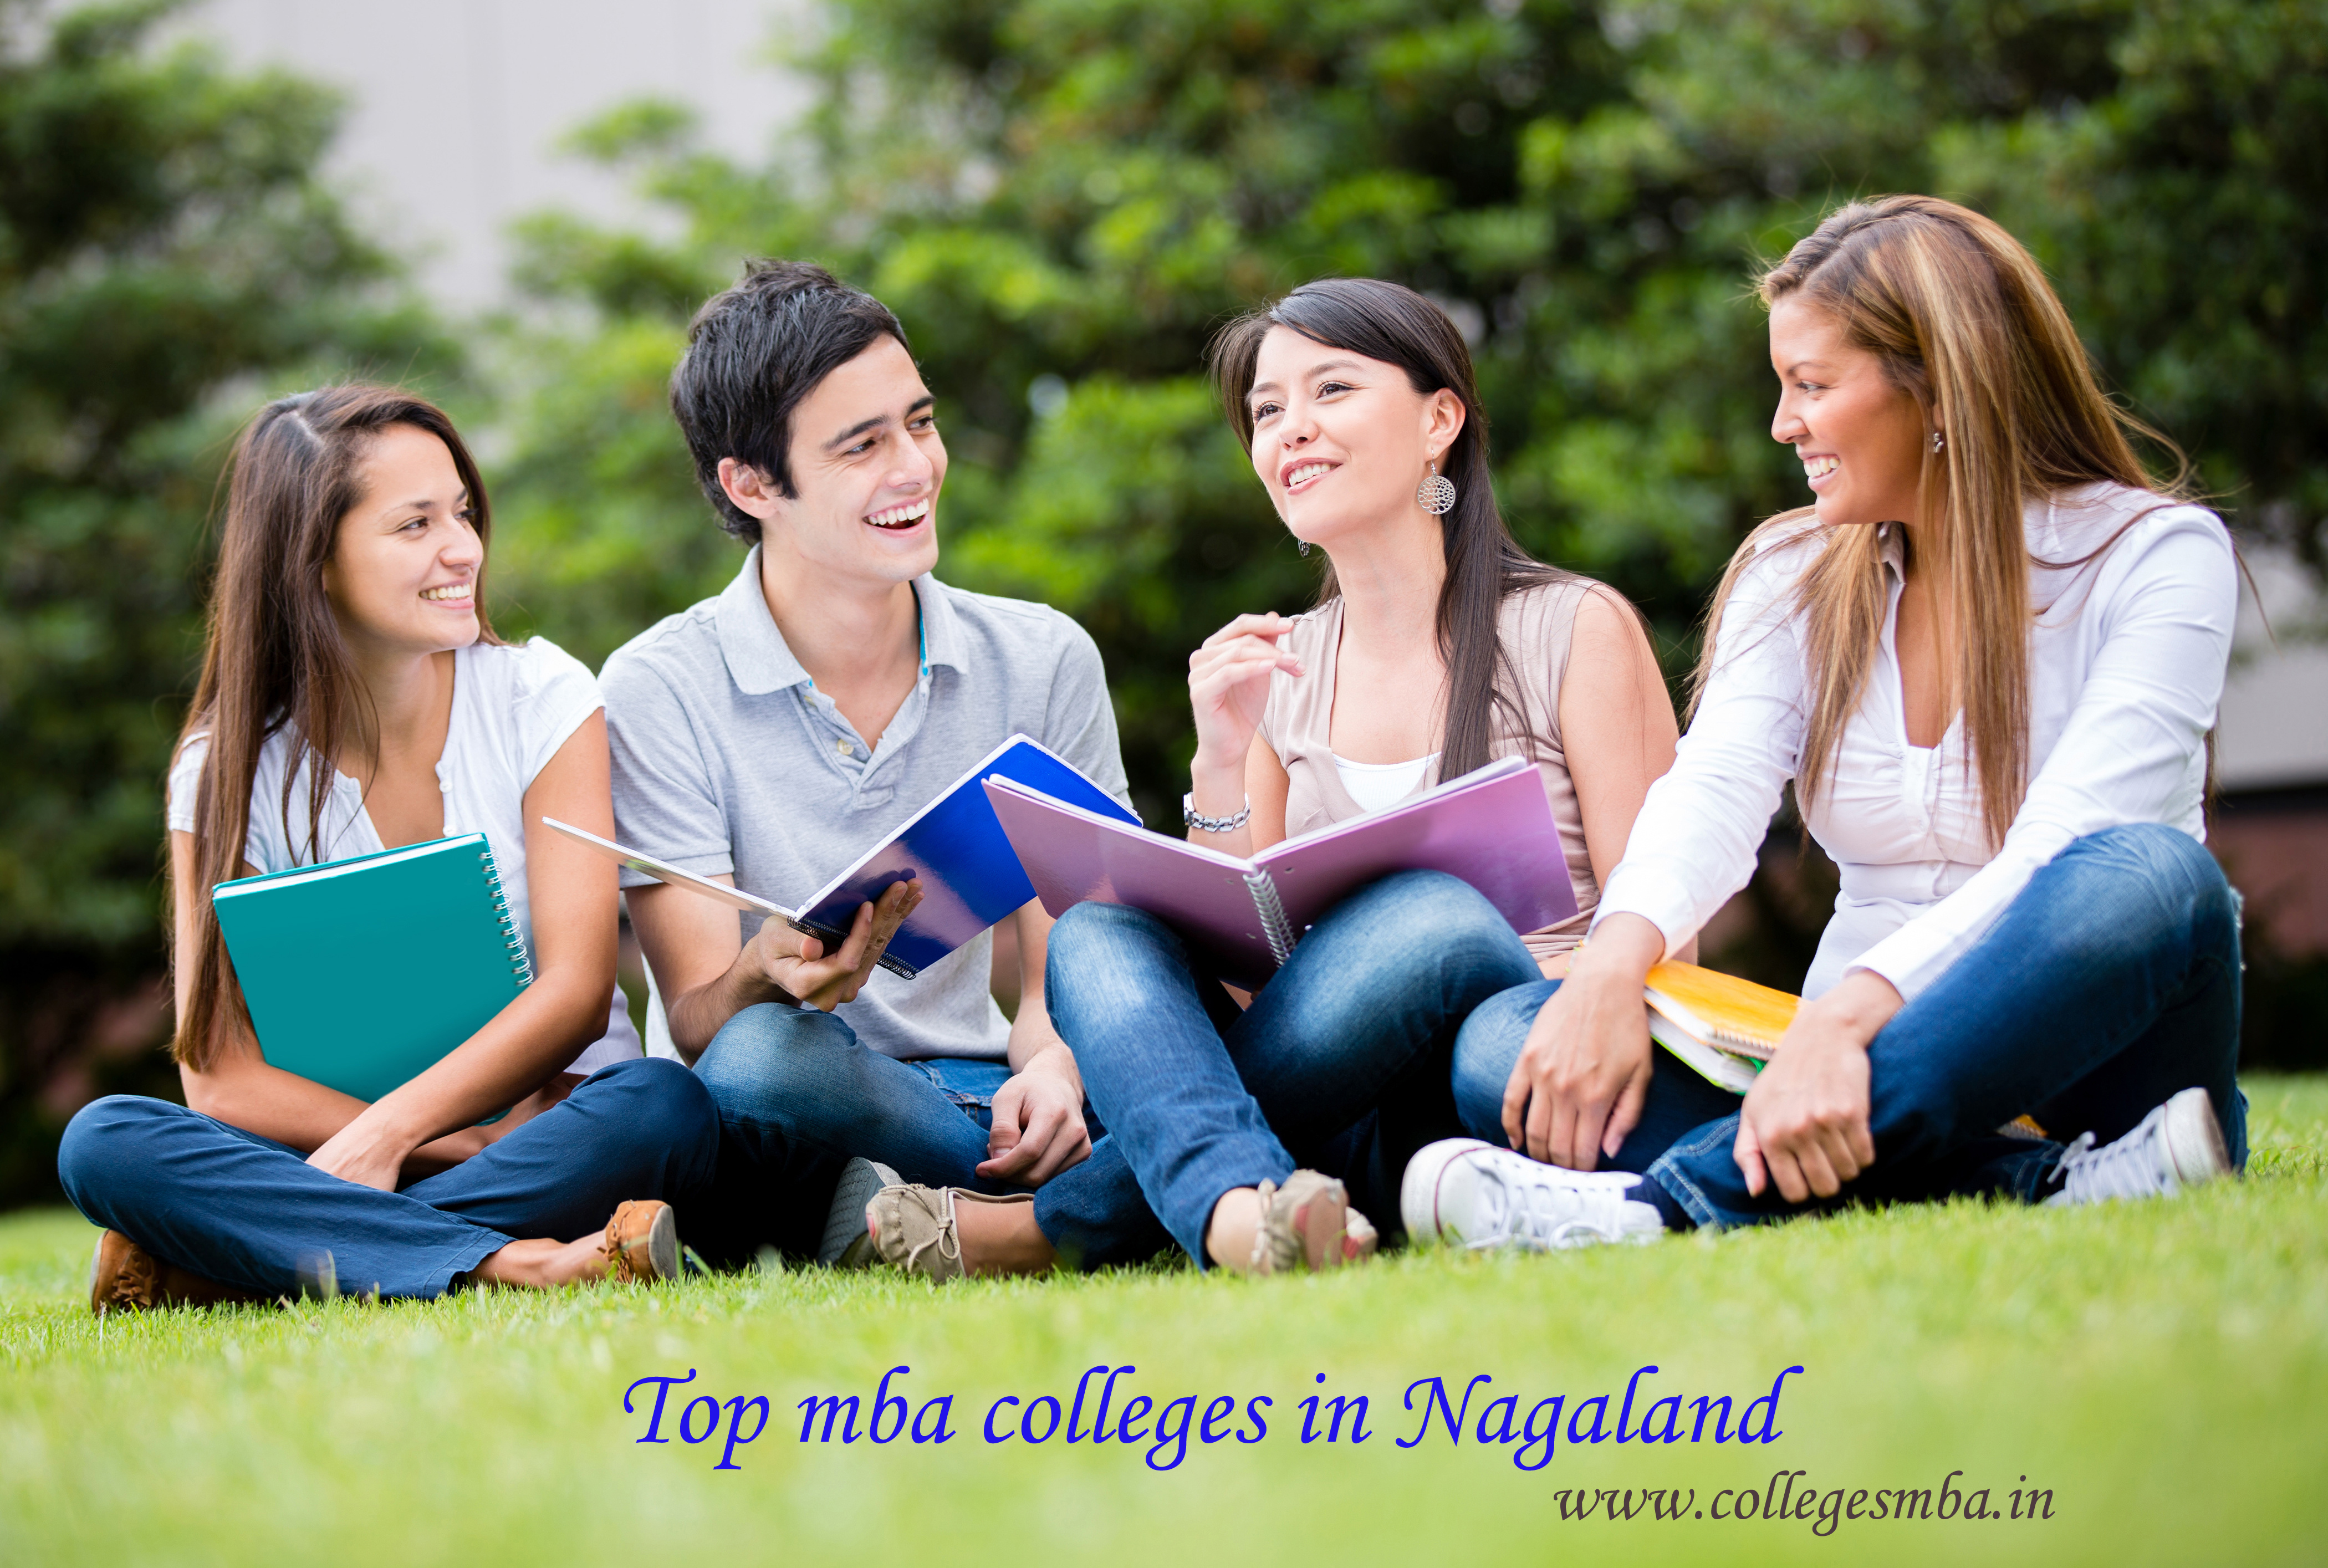 Top MBA Colleges in Nagaland